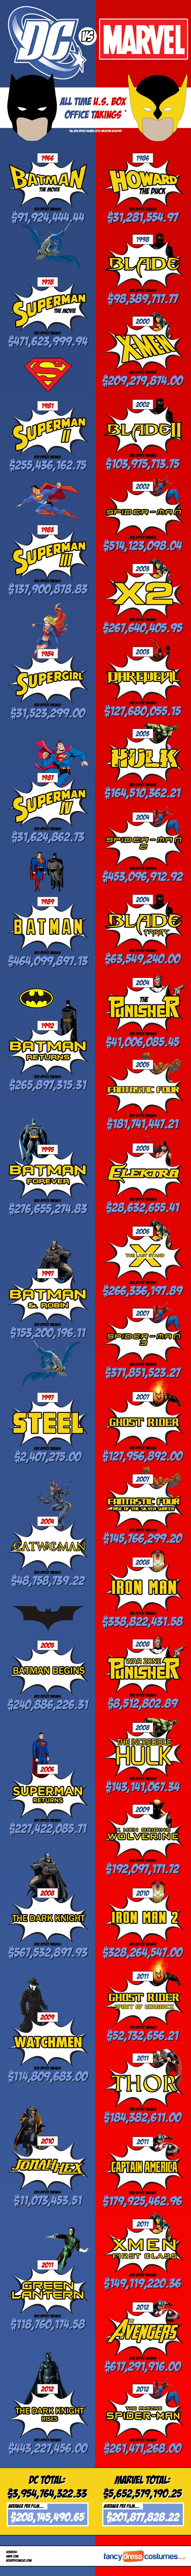 Marvel Vs. DC At The U.S. Box Office  от mick за 08 nov 2012